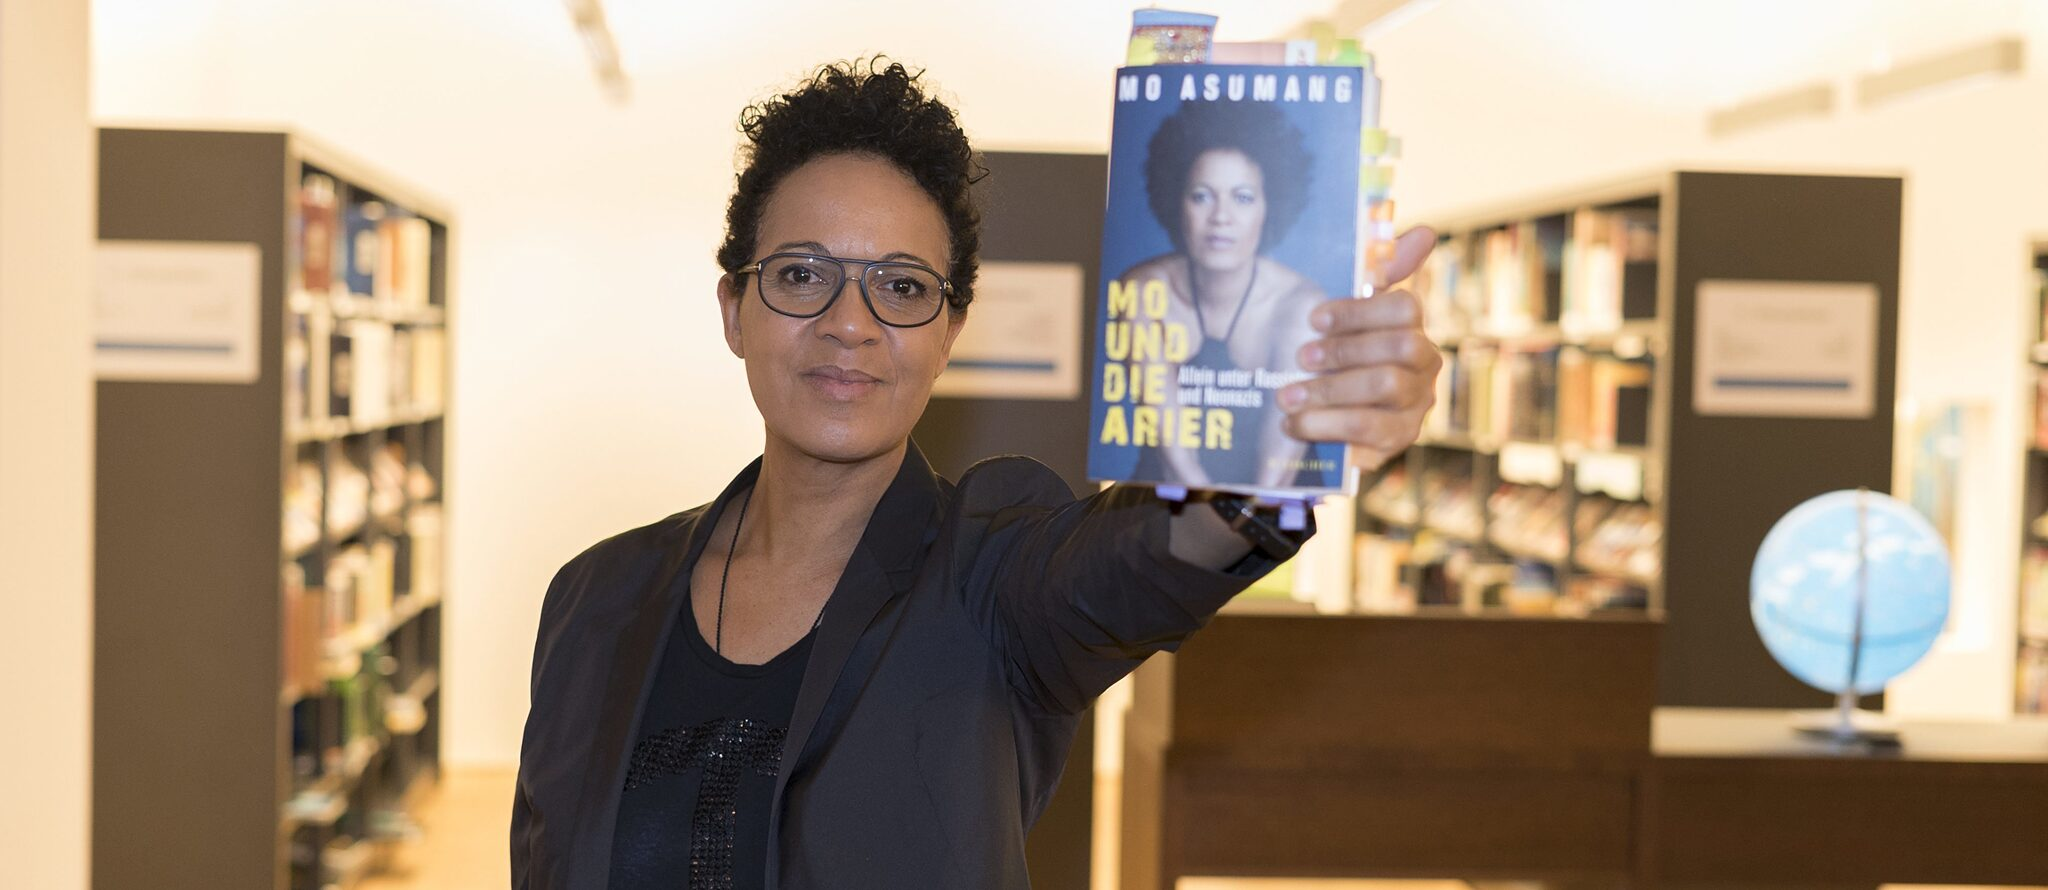 "The afrogerman writer, presenter and director Mo Asumang presents her book:""Mo and the Aryans. Alone Among Racists and Neo-Nazis"""